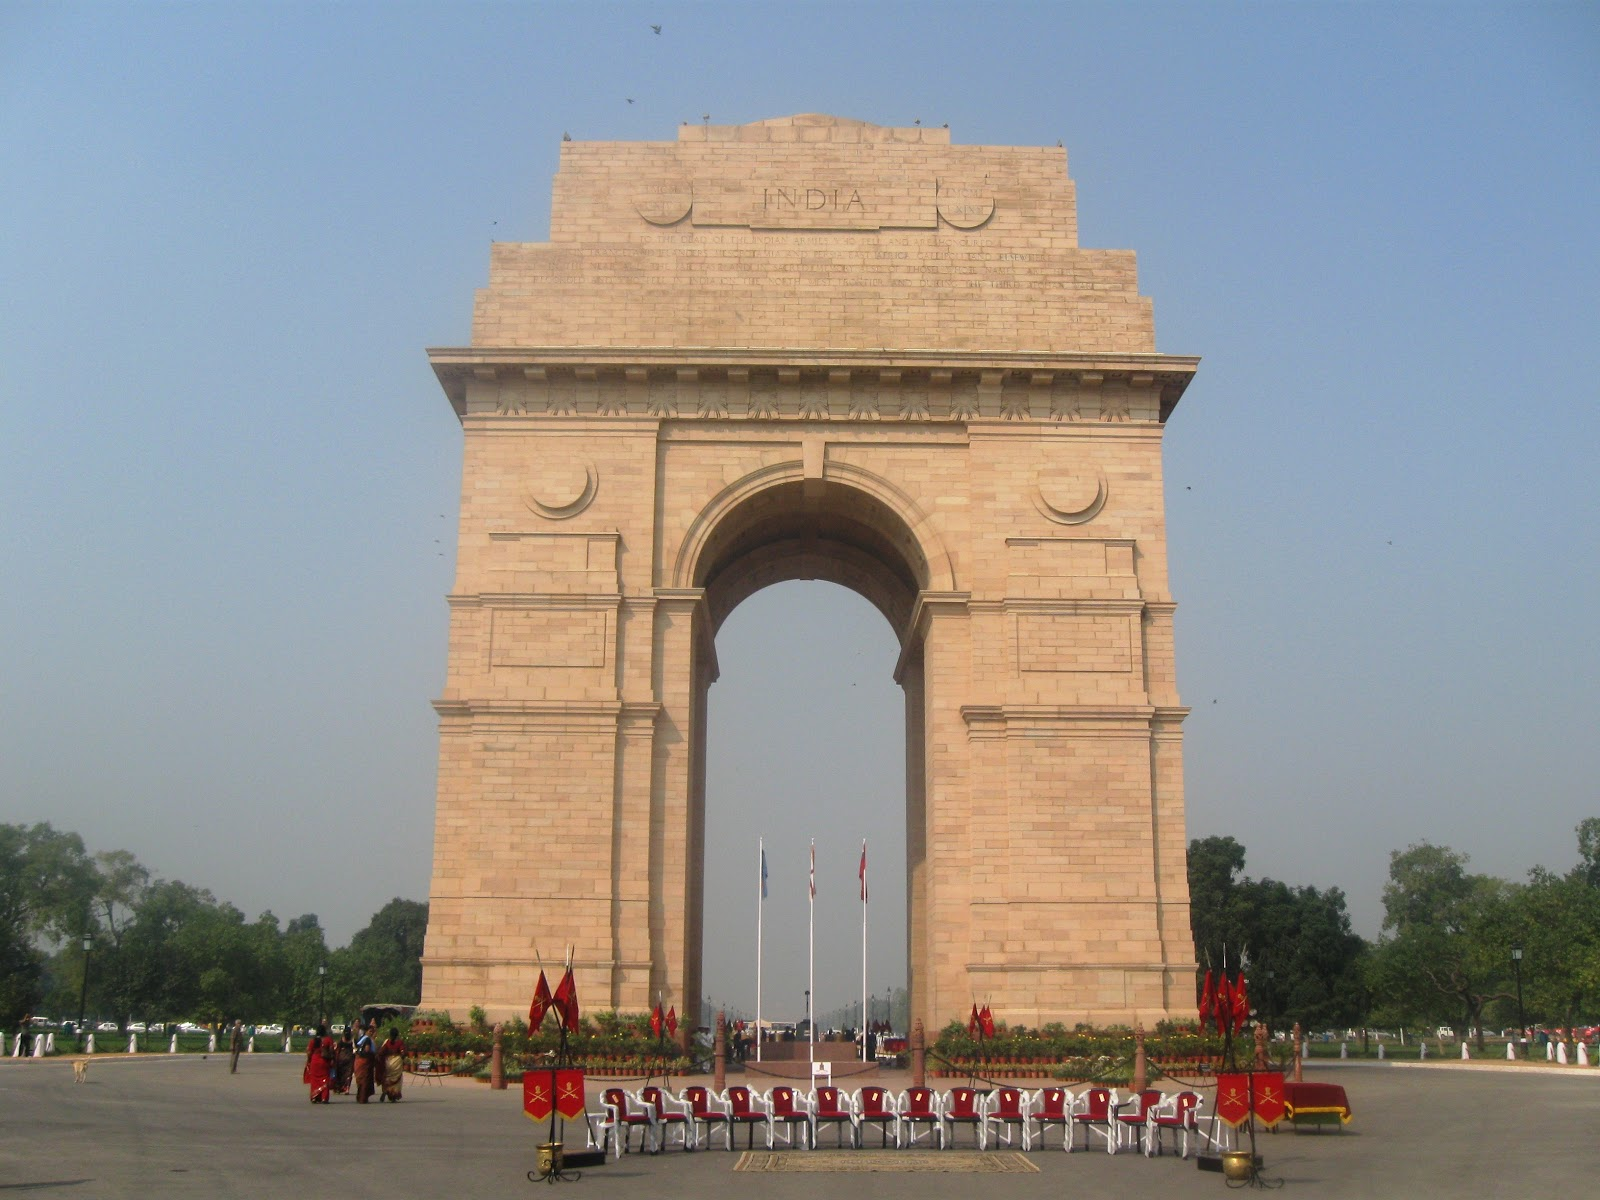 Never thought india gate had that height proud to be a sikkimese